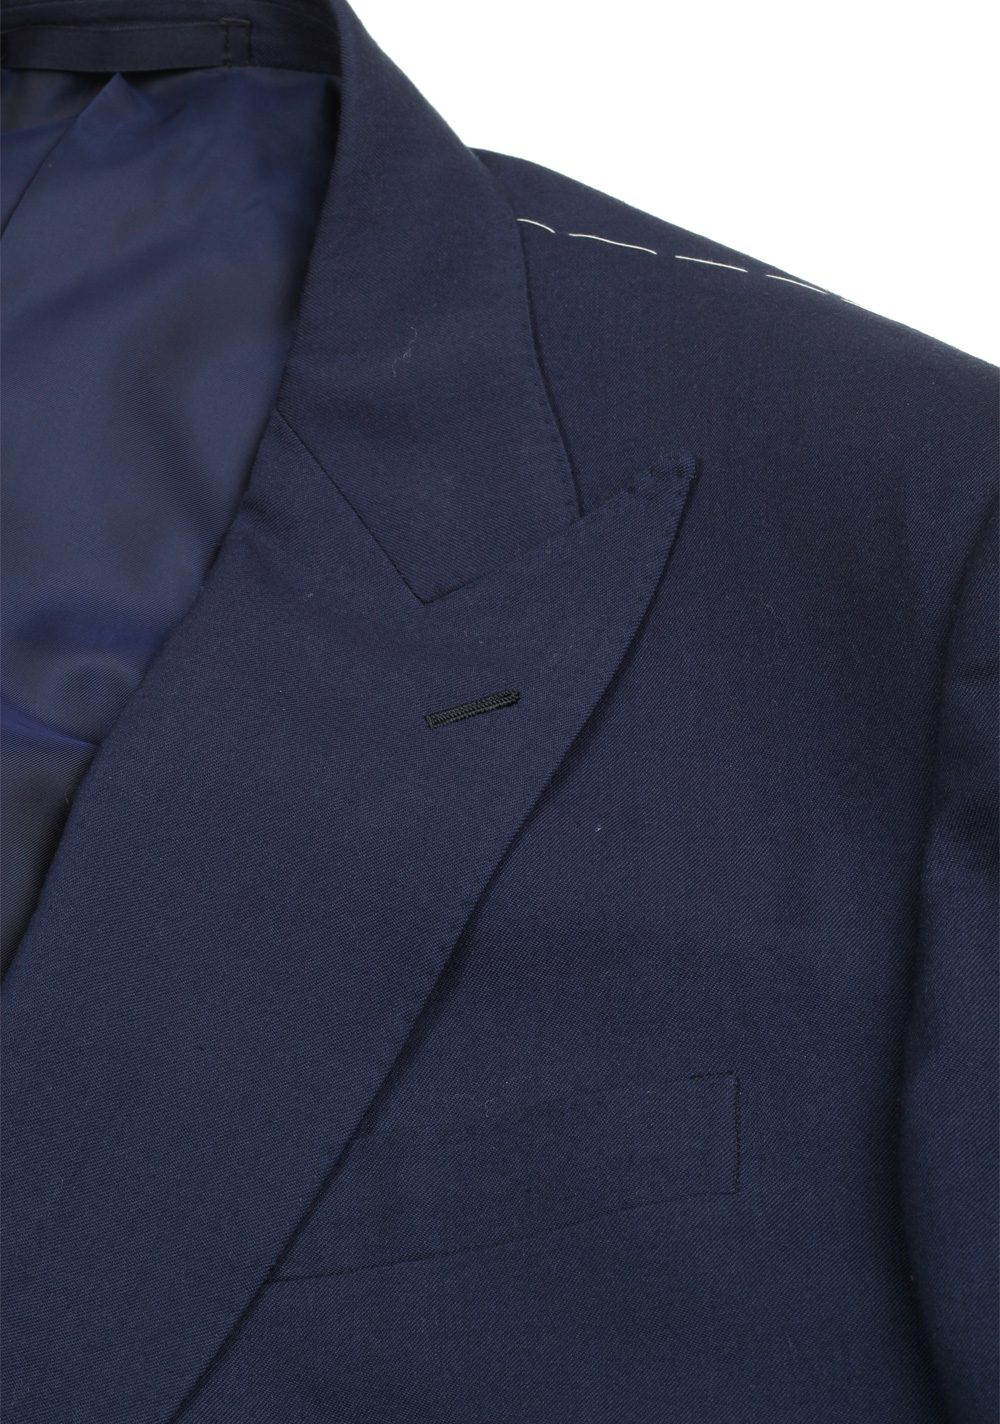 Ralph Lauren Purple Label Blue Suit Size 52 / 42R U.S. In Wool | Costume Limité